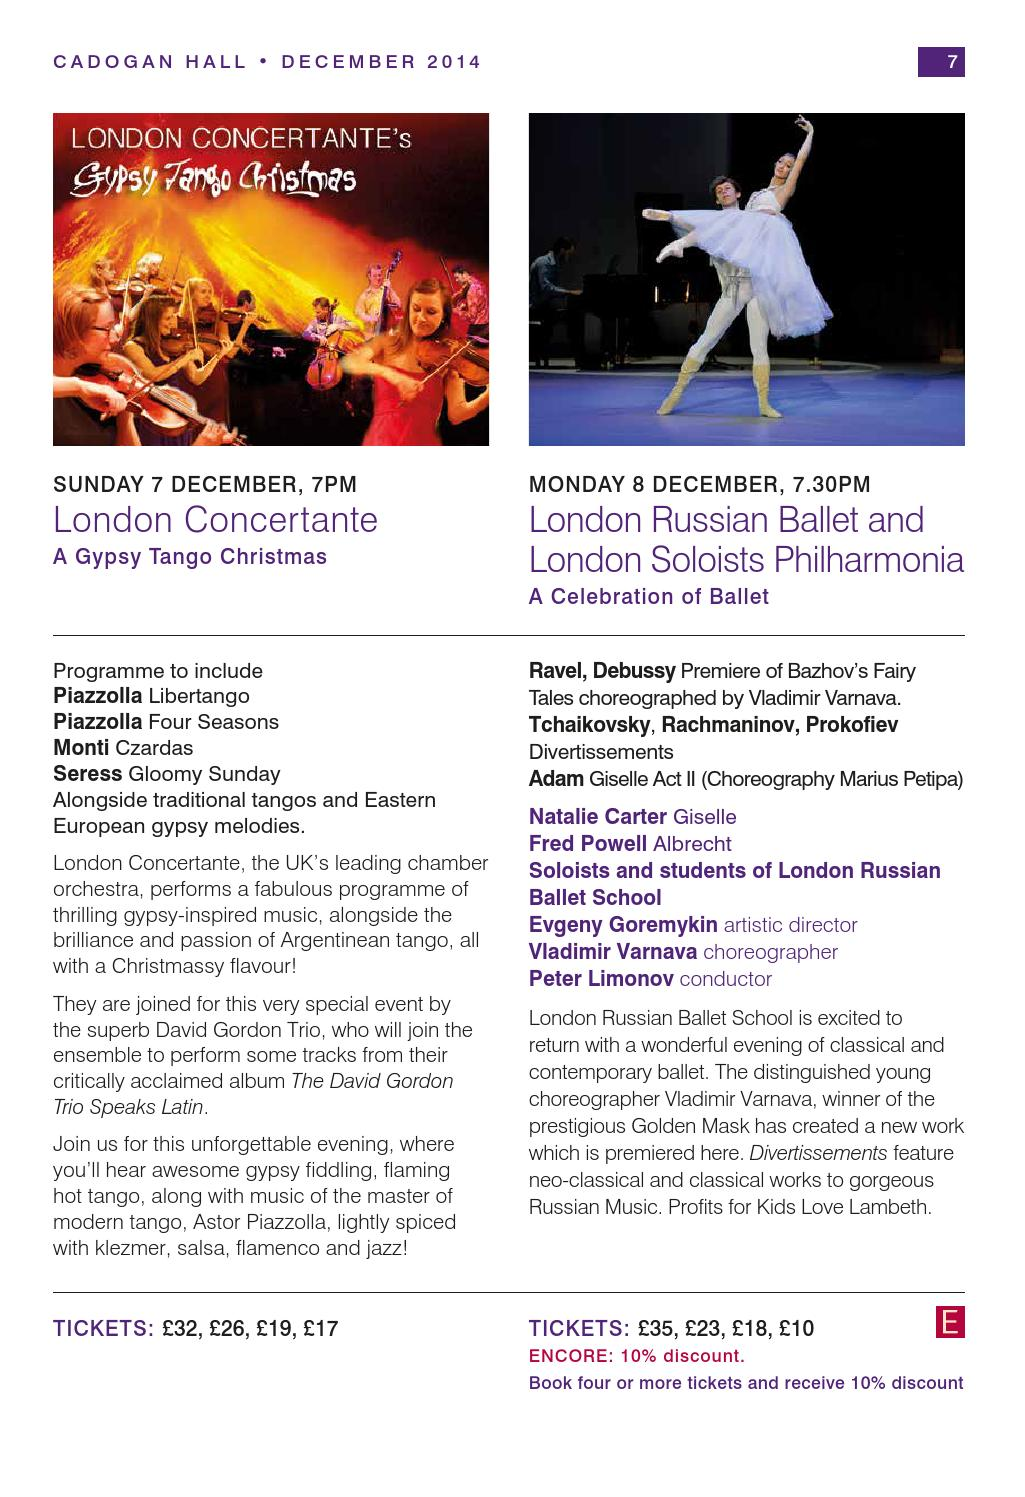 Cadogan Hall events brochure - Winter 2014/15 by Cadogan